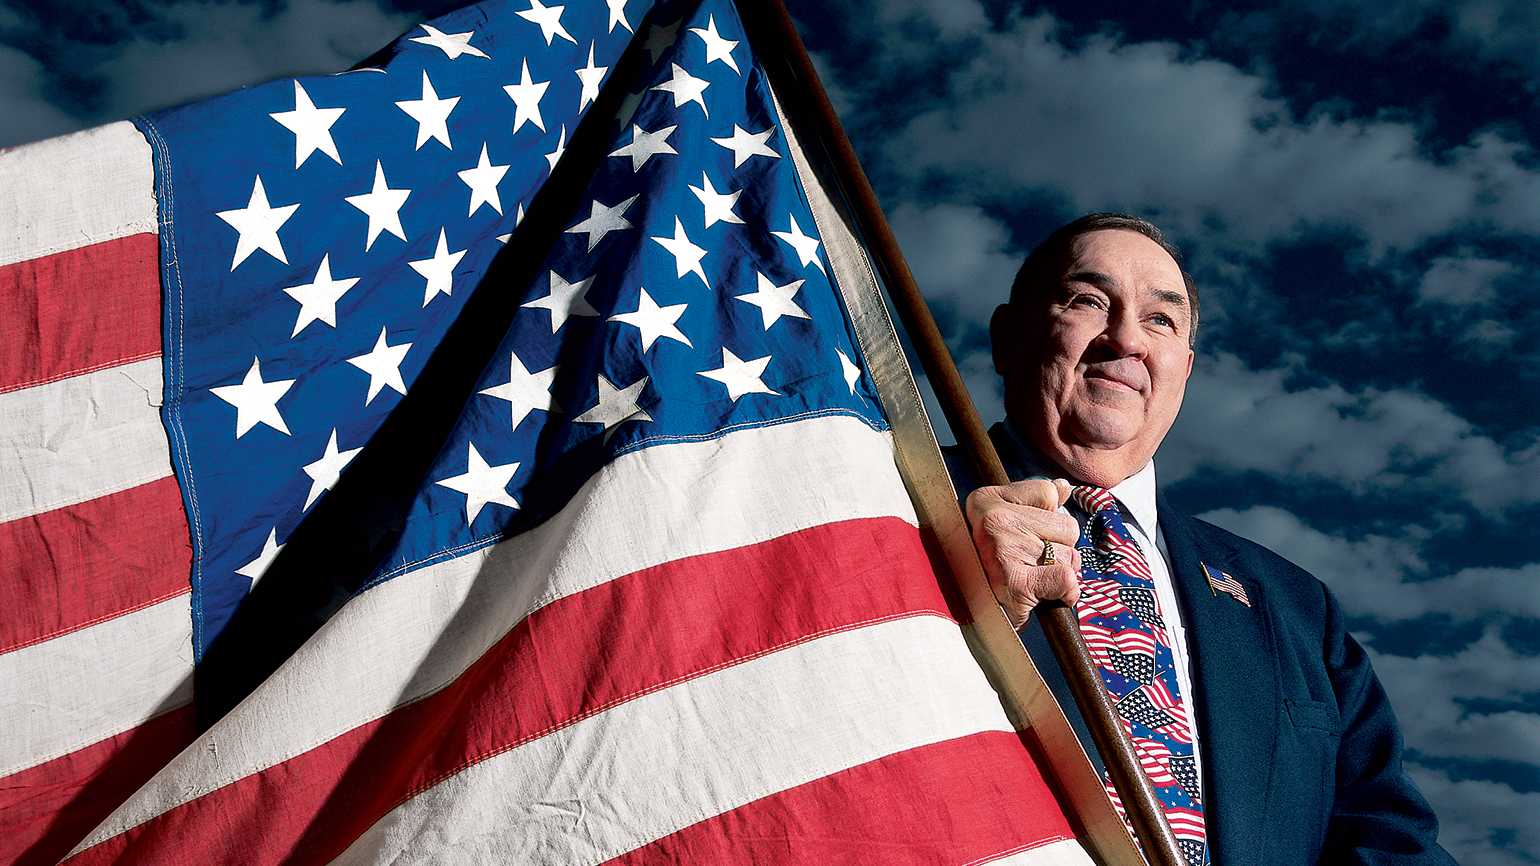 Robert G. Heft and the American flag